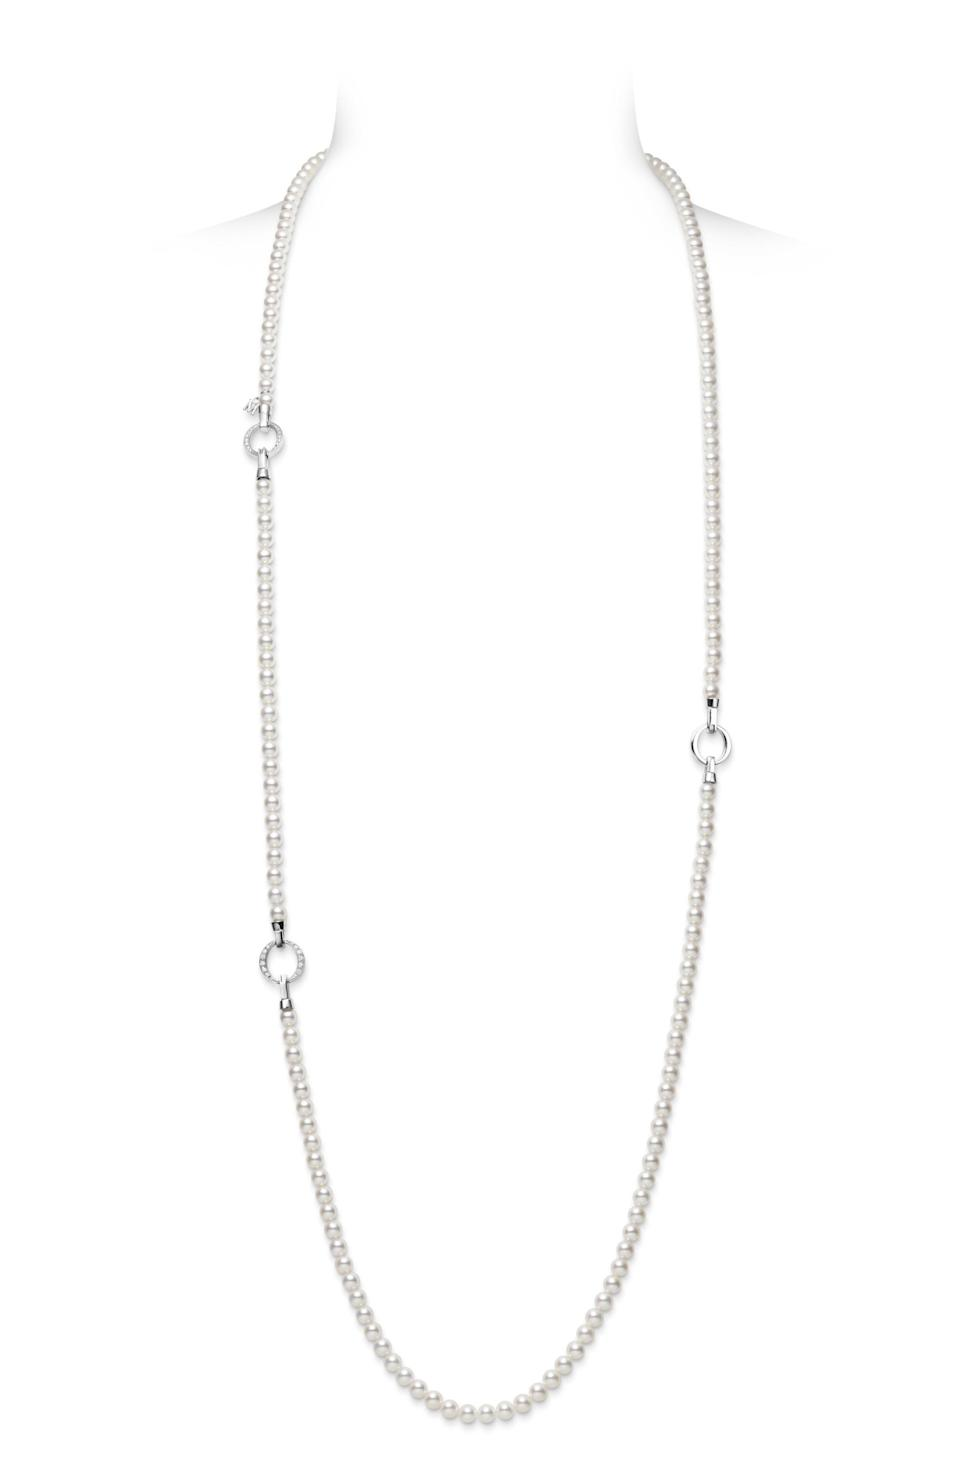 """<p><strong>MIKIMOTO</strong></p><p>nordstrom.com</p><p><strong>$9600.00</strong></p><p><a href=""""https://go.redirectingat.com?id=74968X1596630&url=https%3A%2F%2Fshop.nordstrom.com%2Fs%2Fmikimoto-cultured-pearl-diamond-station-necklace%2F5423172&sref=https%3A%2F%2Fwww.townandcountrymag.com%2Fstyle%2Fjewelry-and-watches%2Fg37368162%2Ffine-jewelry-brands-at-nordstrom%2F"""" rel=""""nofollow noopener"""" target=""""_blank"""" data-ylk=""""slk:Shop Now"""" class=""""link rapid-noclick-resp"""">Shop Now</a></p><p>Above all, Mikimoto is known for pearls—and has been known for them for well over 120 years now.</p>"""